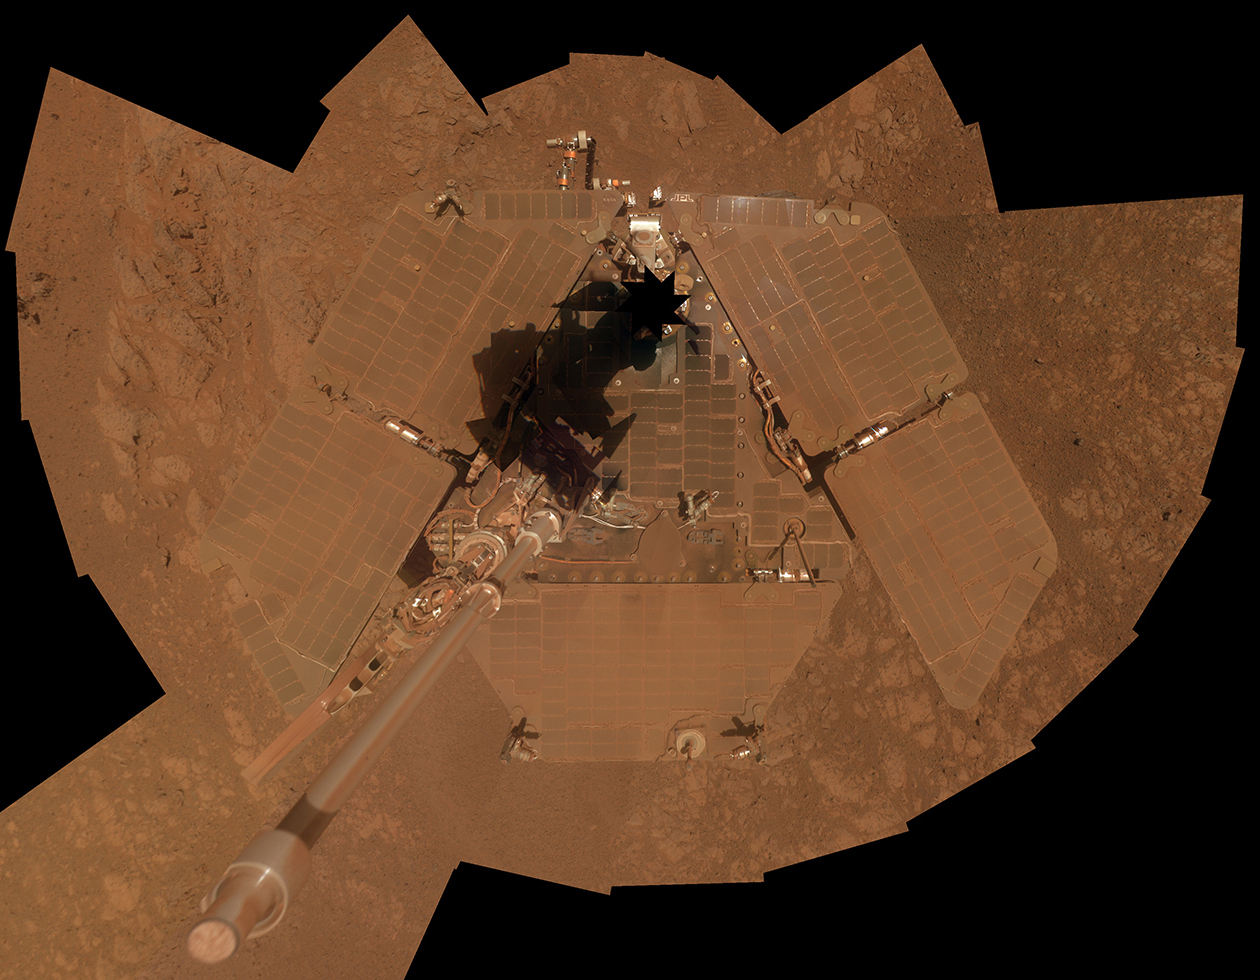 Revealing Mars: Opportunity | Mars Exploration Program